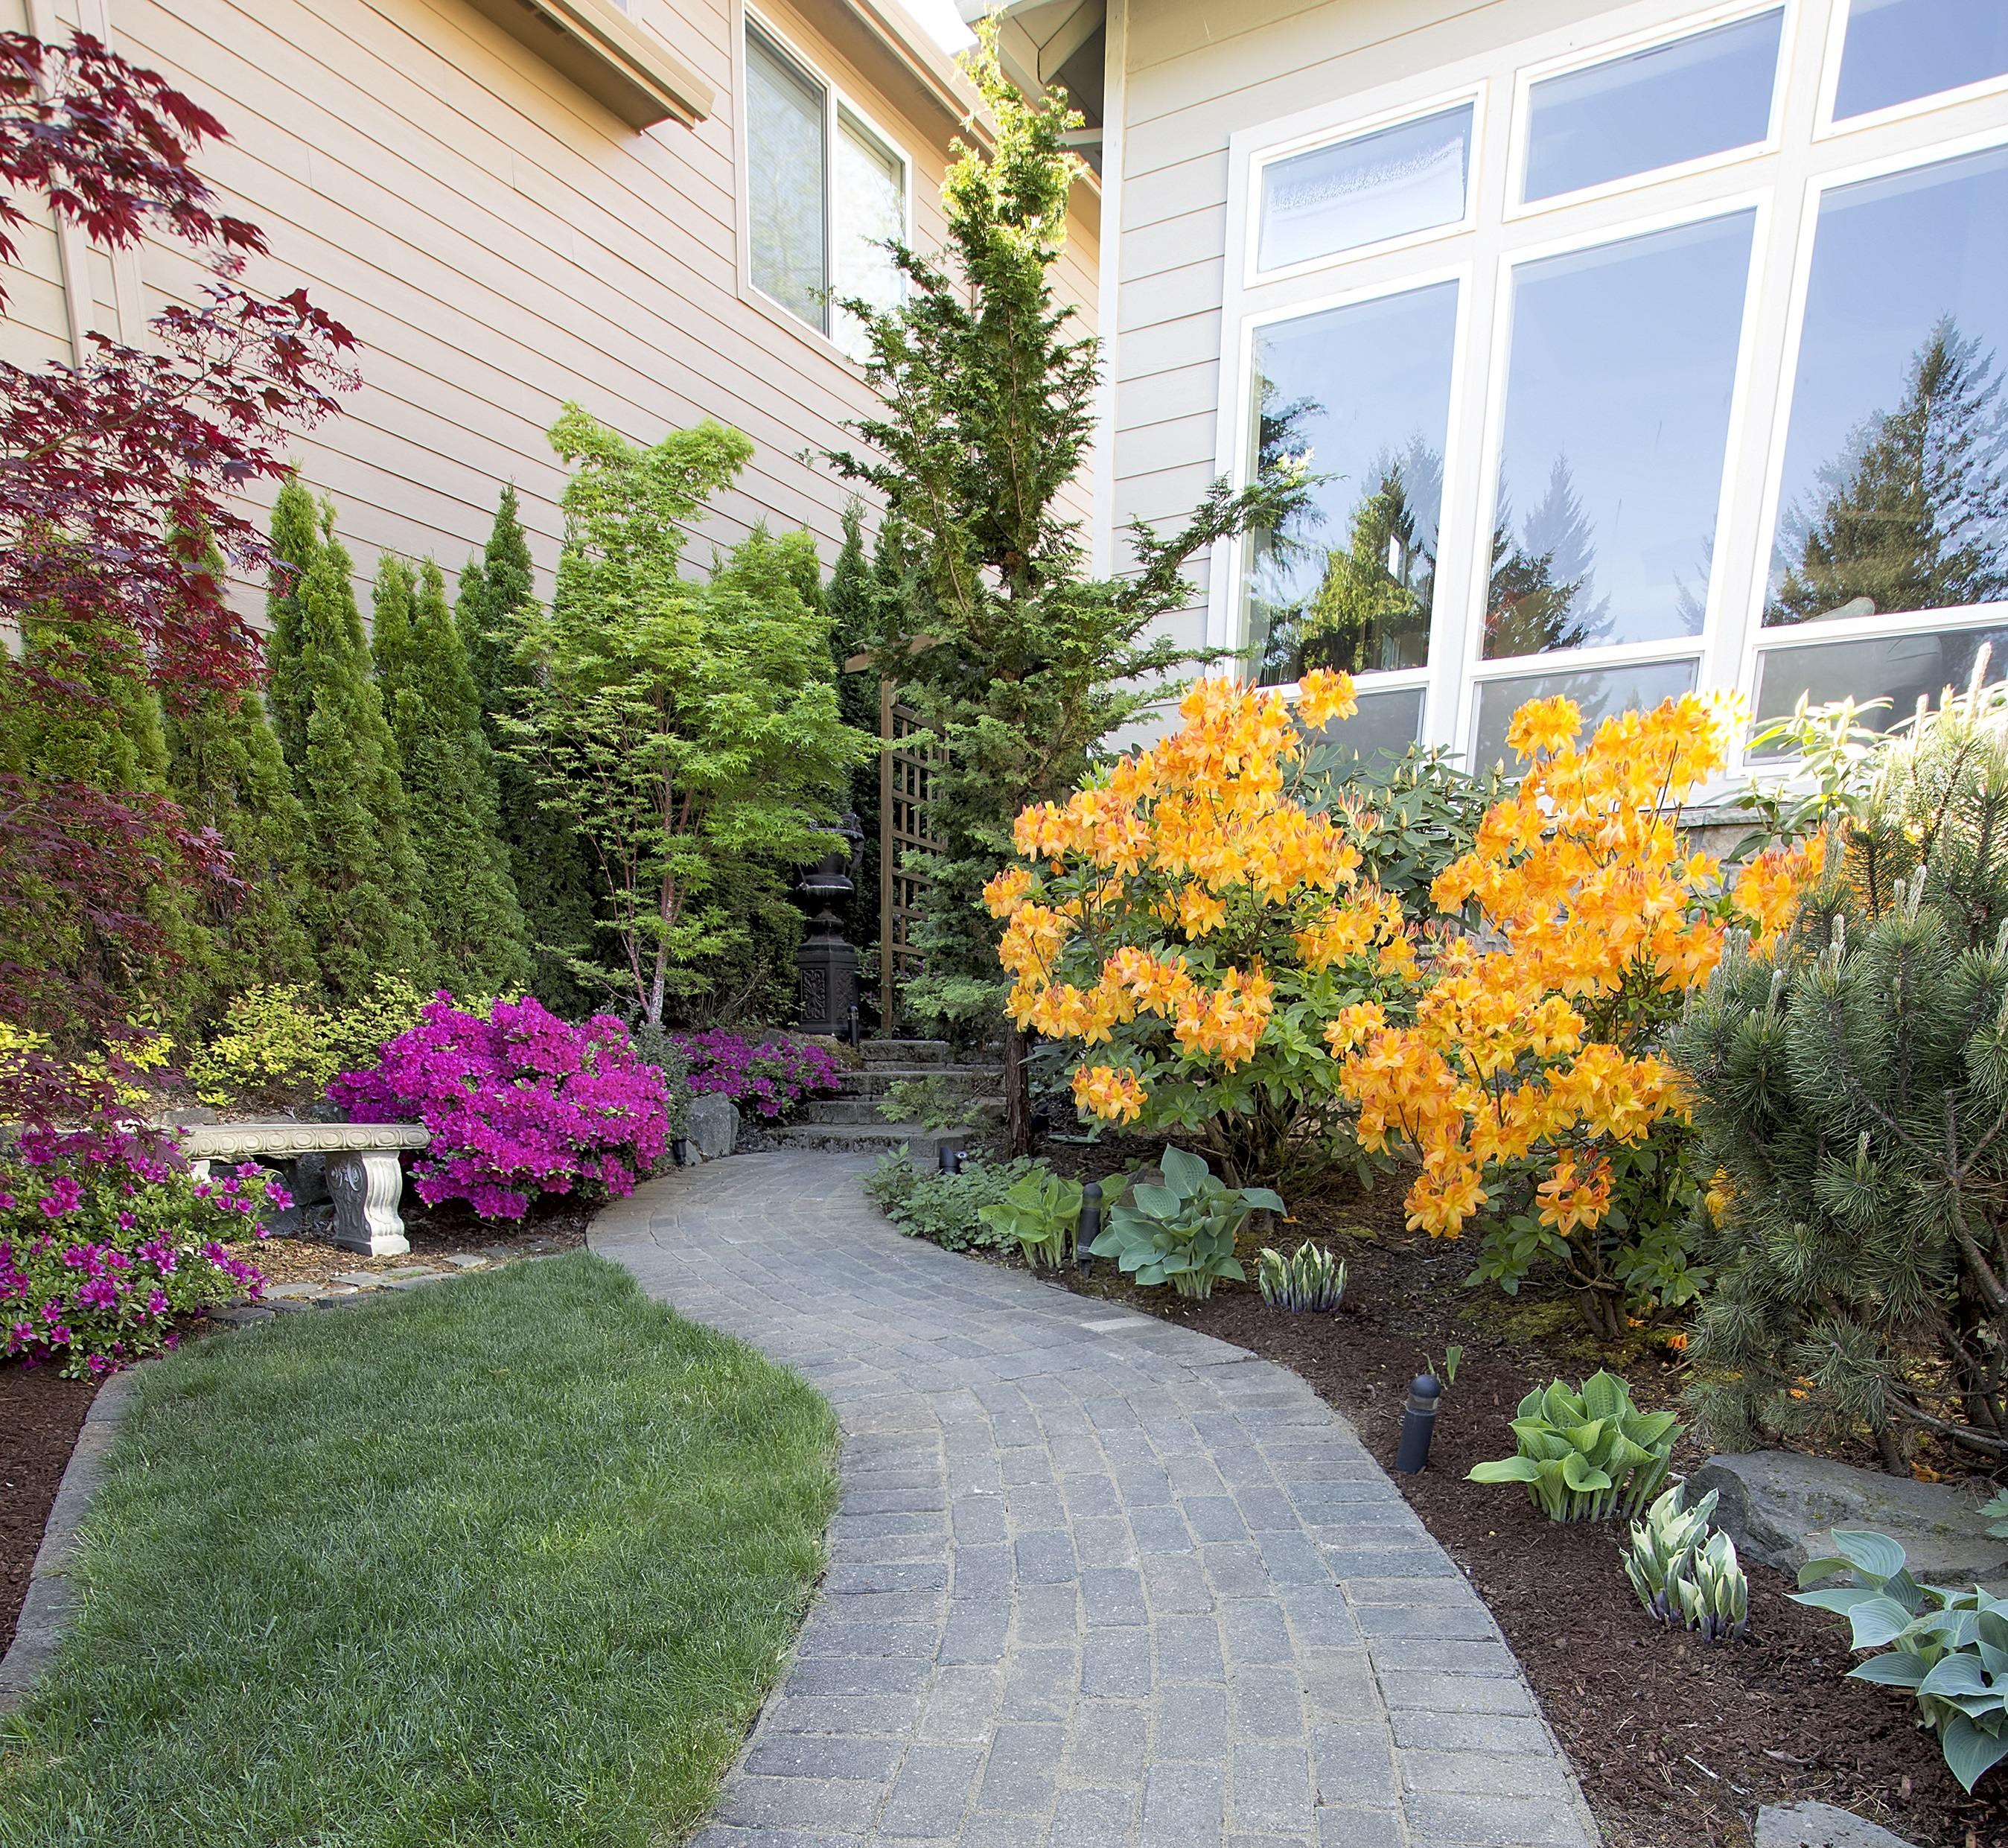 This brick pathway is a beautiful hardscape design installed by America Pavers